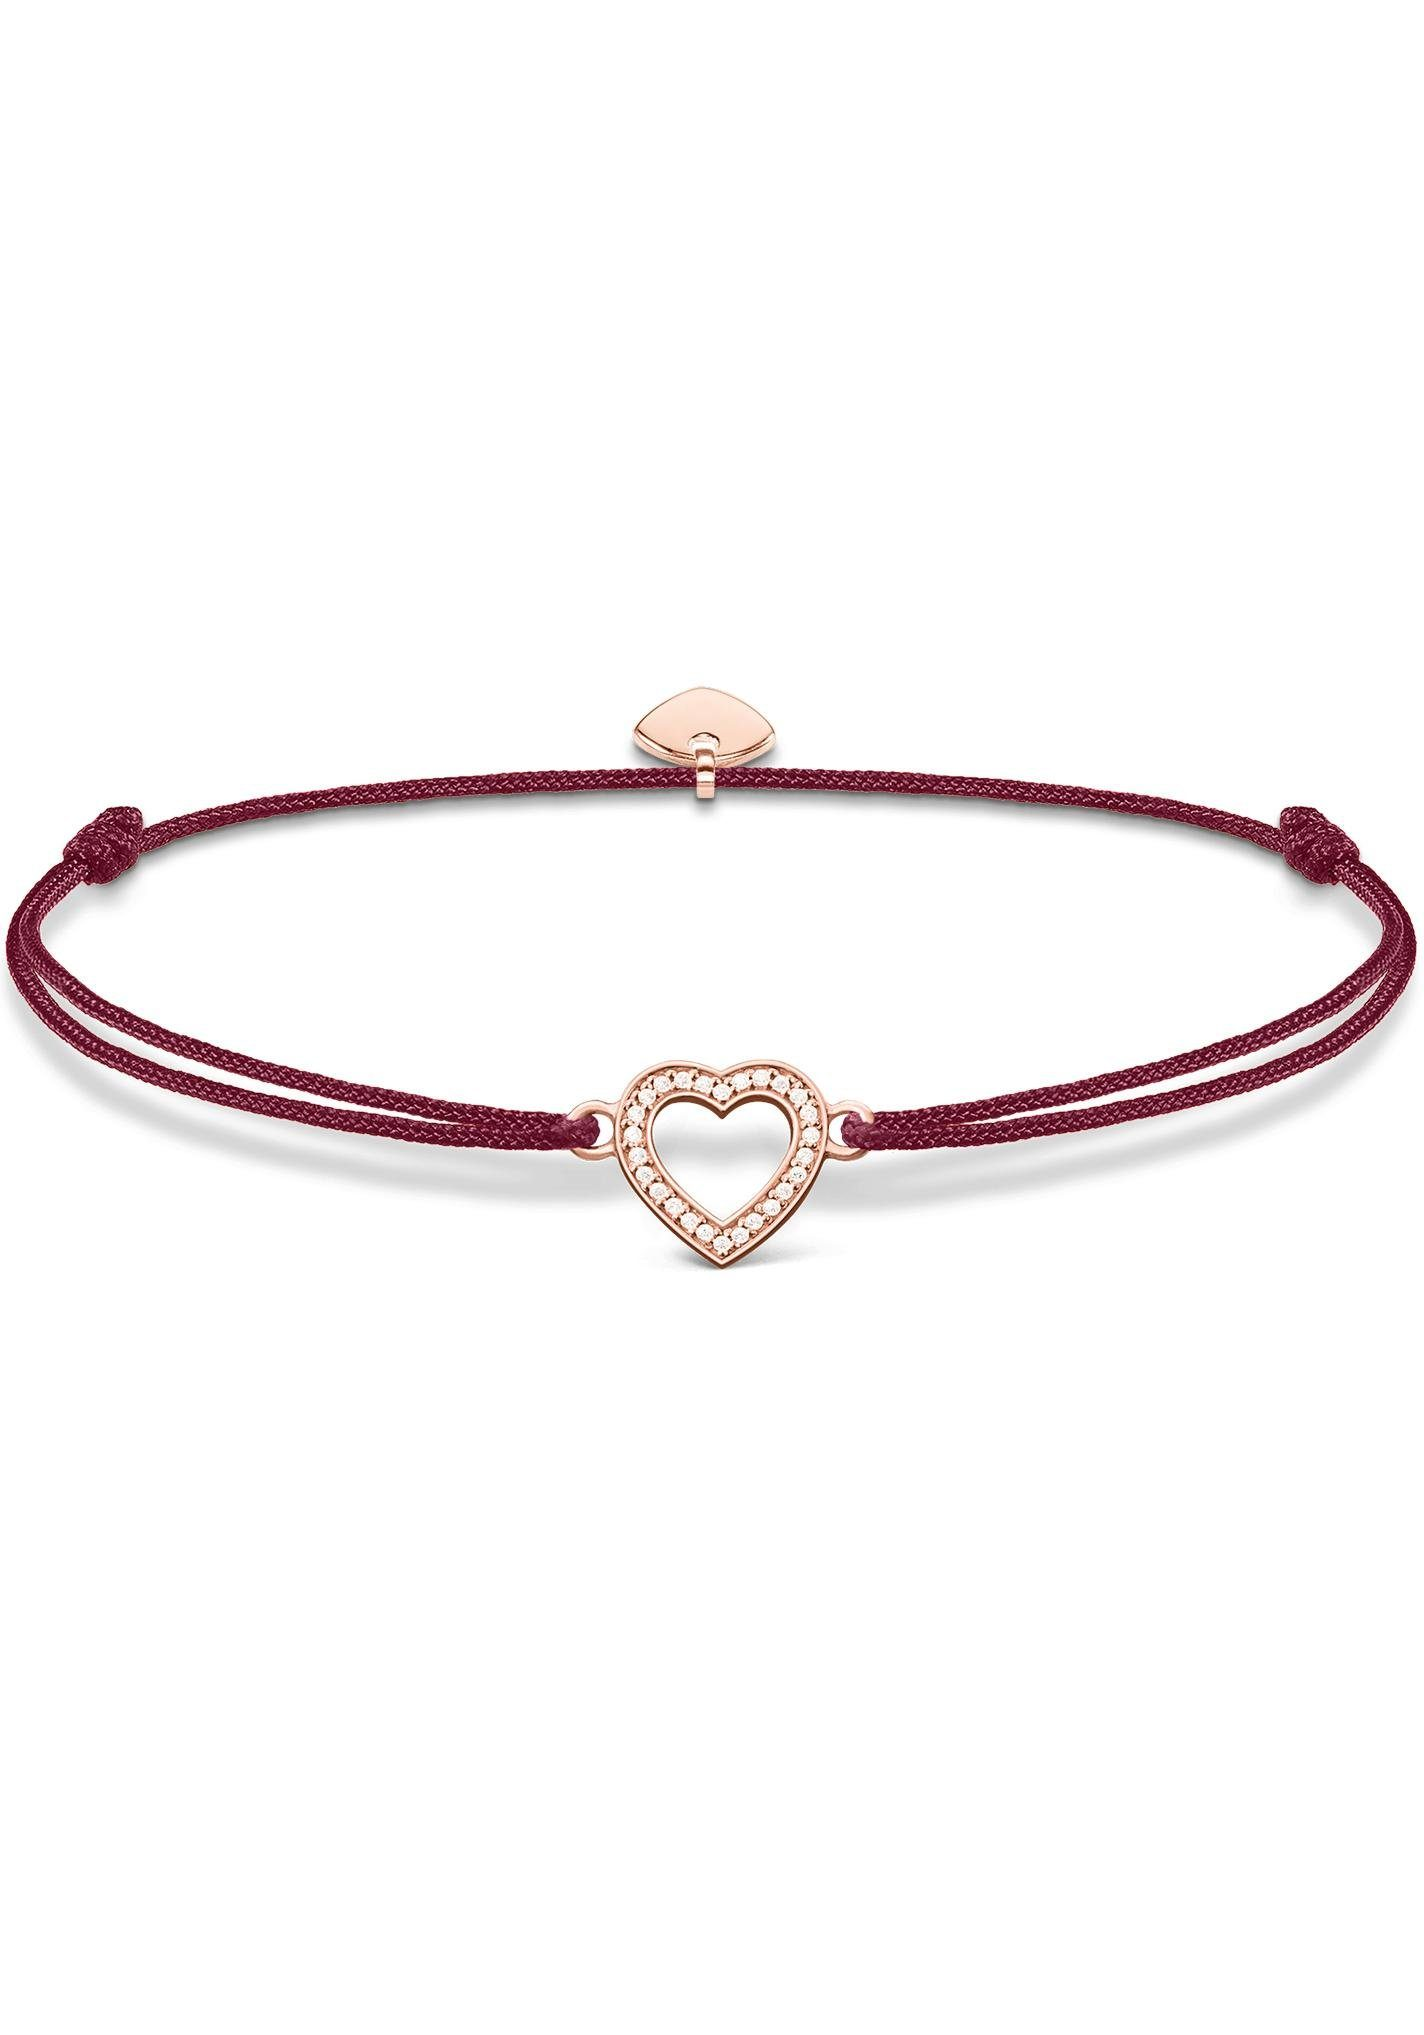 "THOMAS SABO Armband »Little Secret ""Herz"", LS040-898-10-L20v« mit Zirkonia"